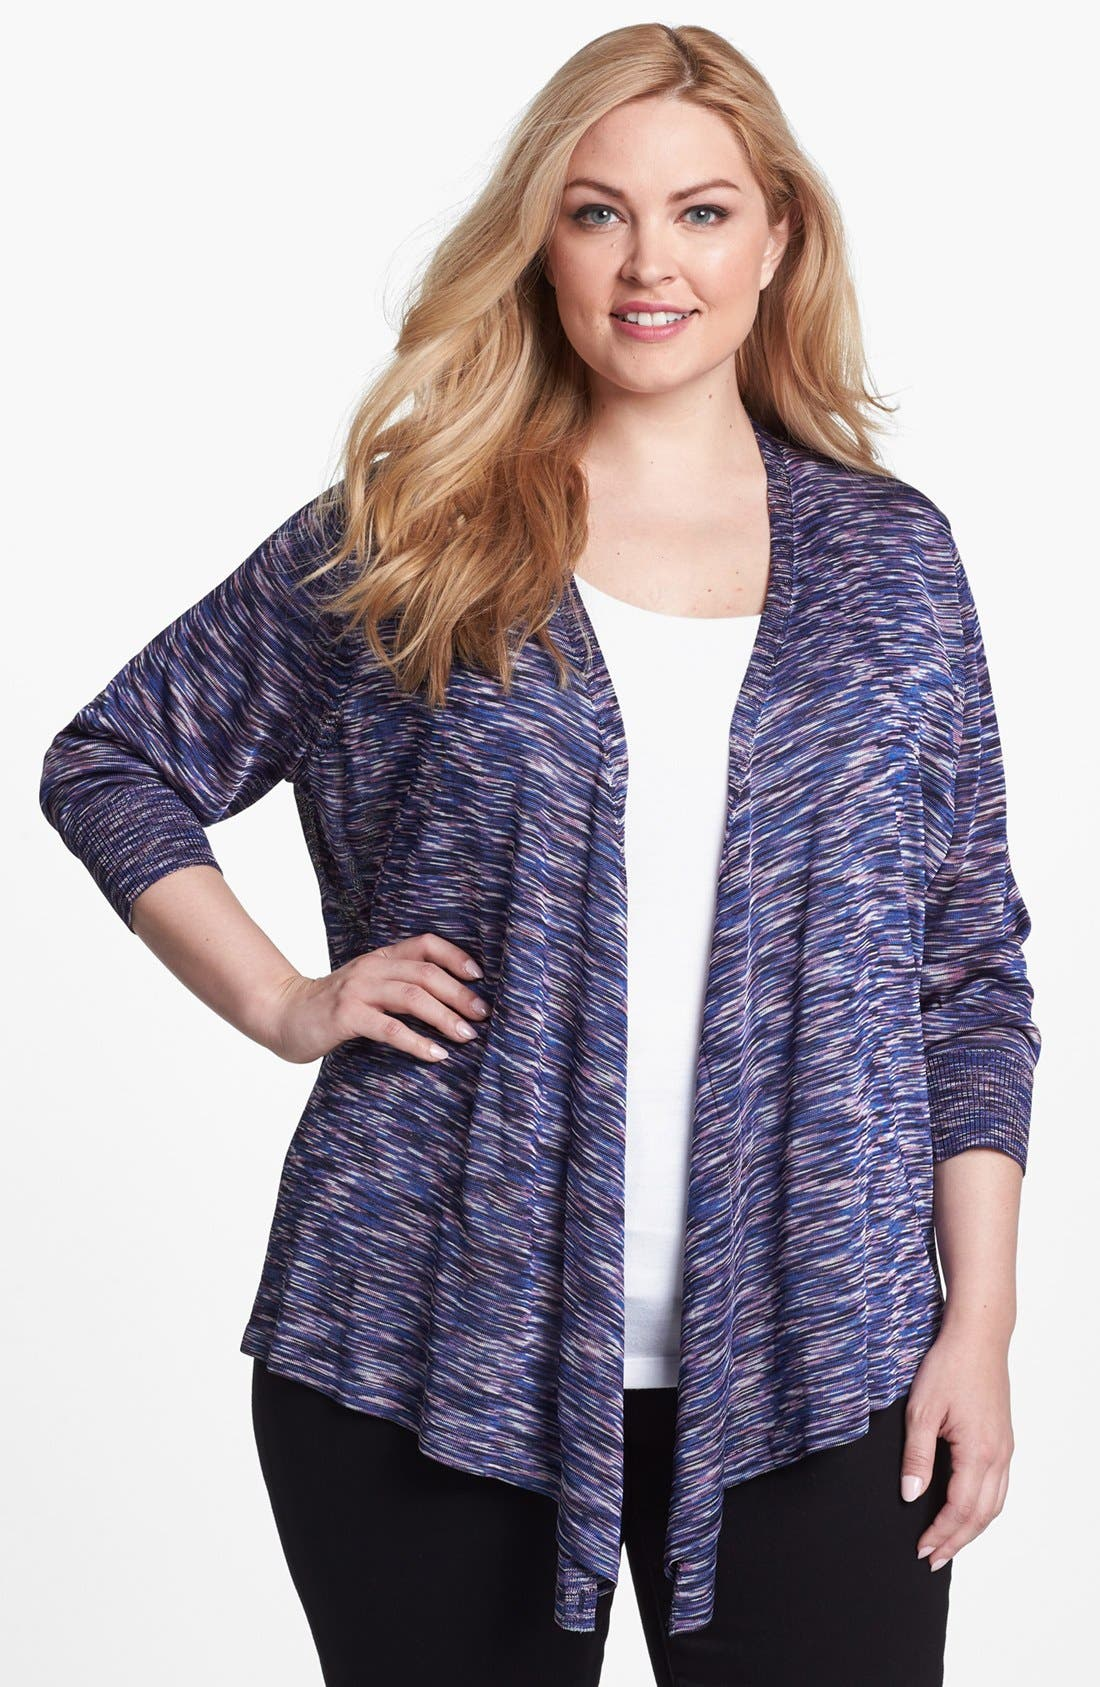 Alternate Image 1 Selected - NIC+ZOE 'Space Dye' Four-Way Convertible Cardigan (Plus Size)